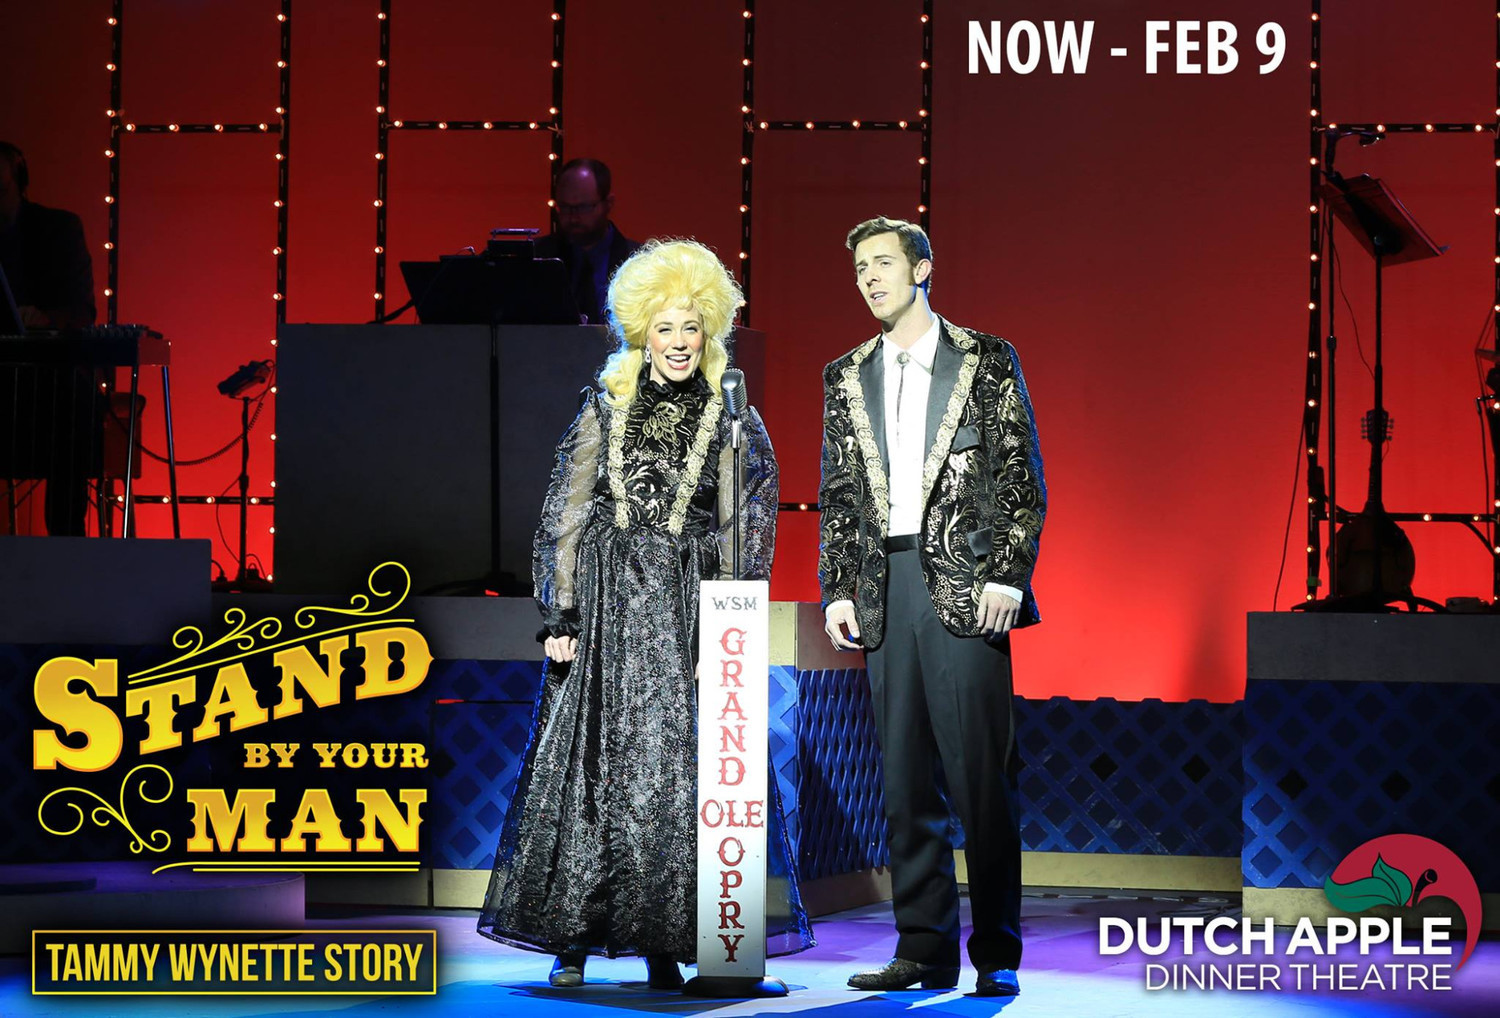 BWW Review: STAND BY YOUR MAN at Dutch Apple Dinner Theatre